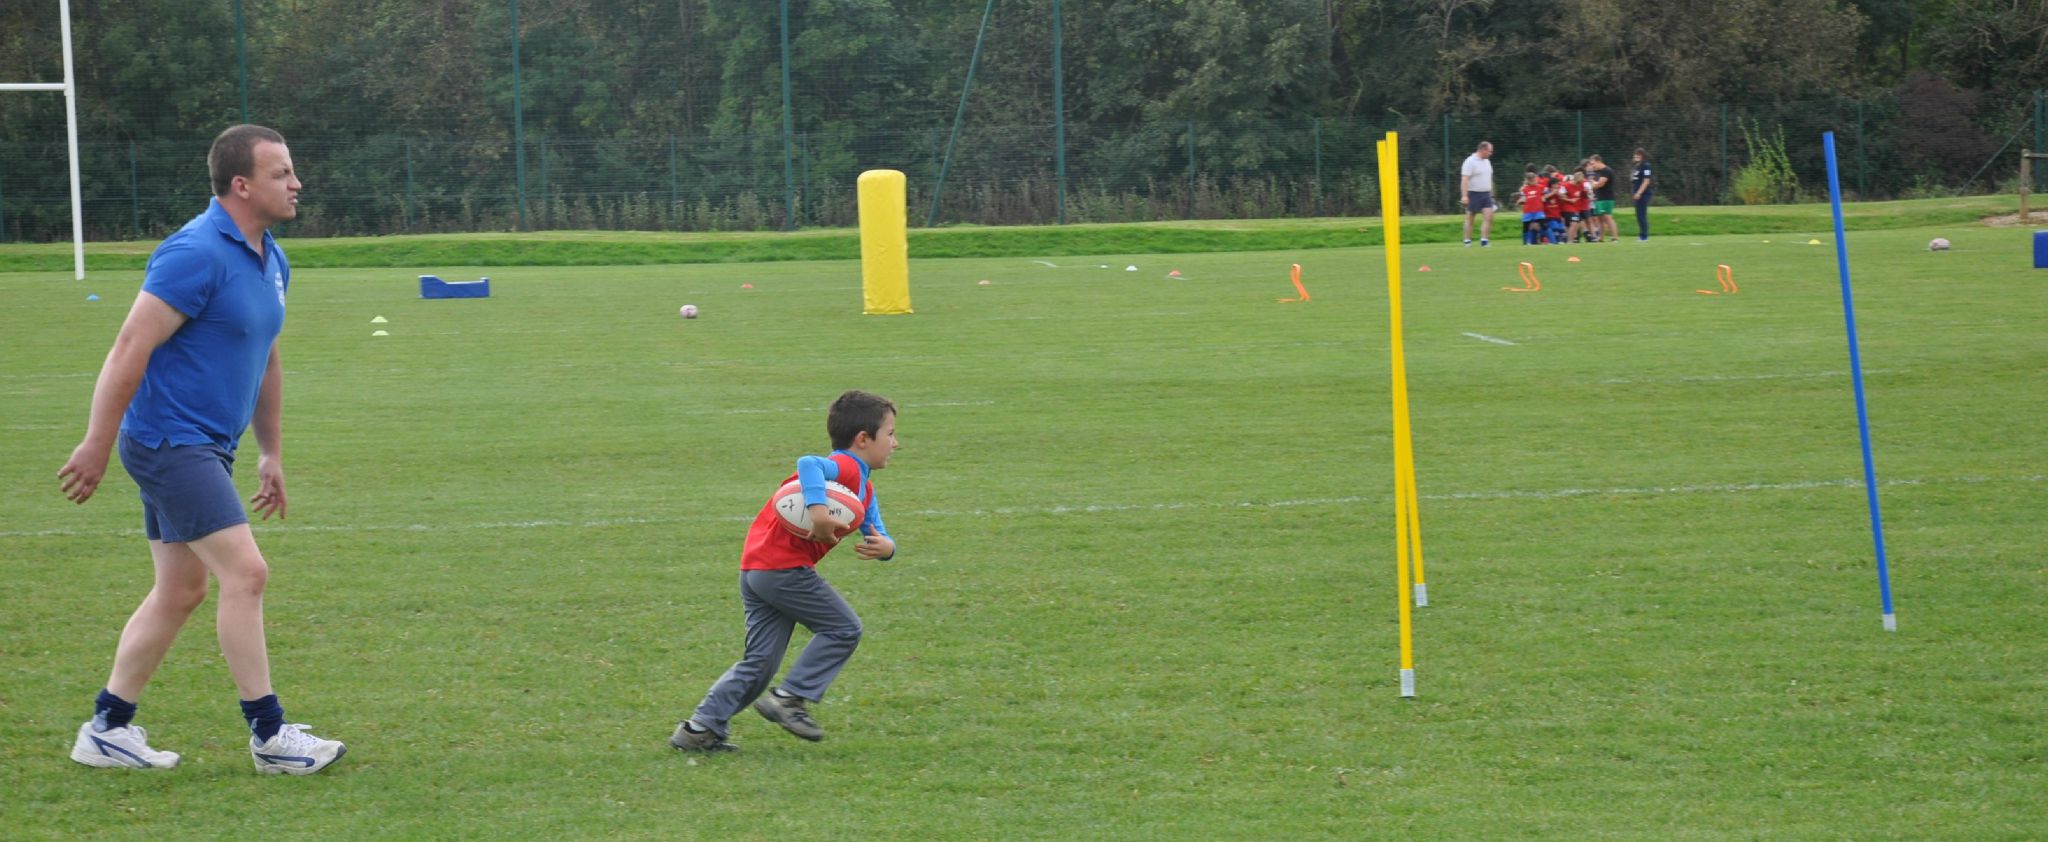 Rugby 29 09 2012 - (77)